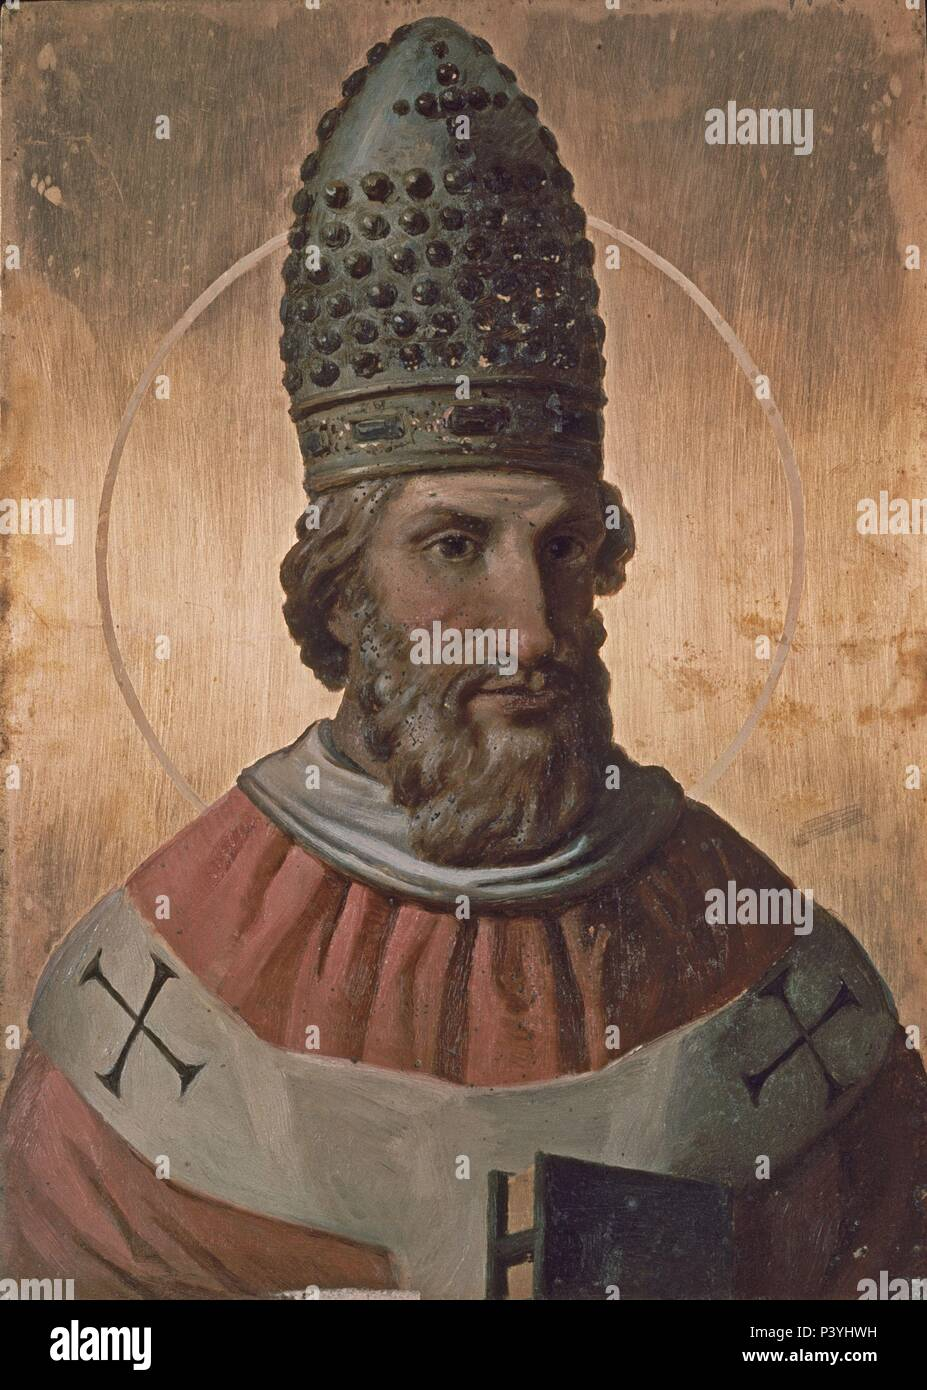 Gregory VII (san Gregorio VII), pope from 1073 to 1085. Copperplate painting. Cathedral of Salermo, Italy. Location: CATEDRAL, SALERNO, ITALIA. - Stock Image